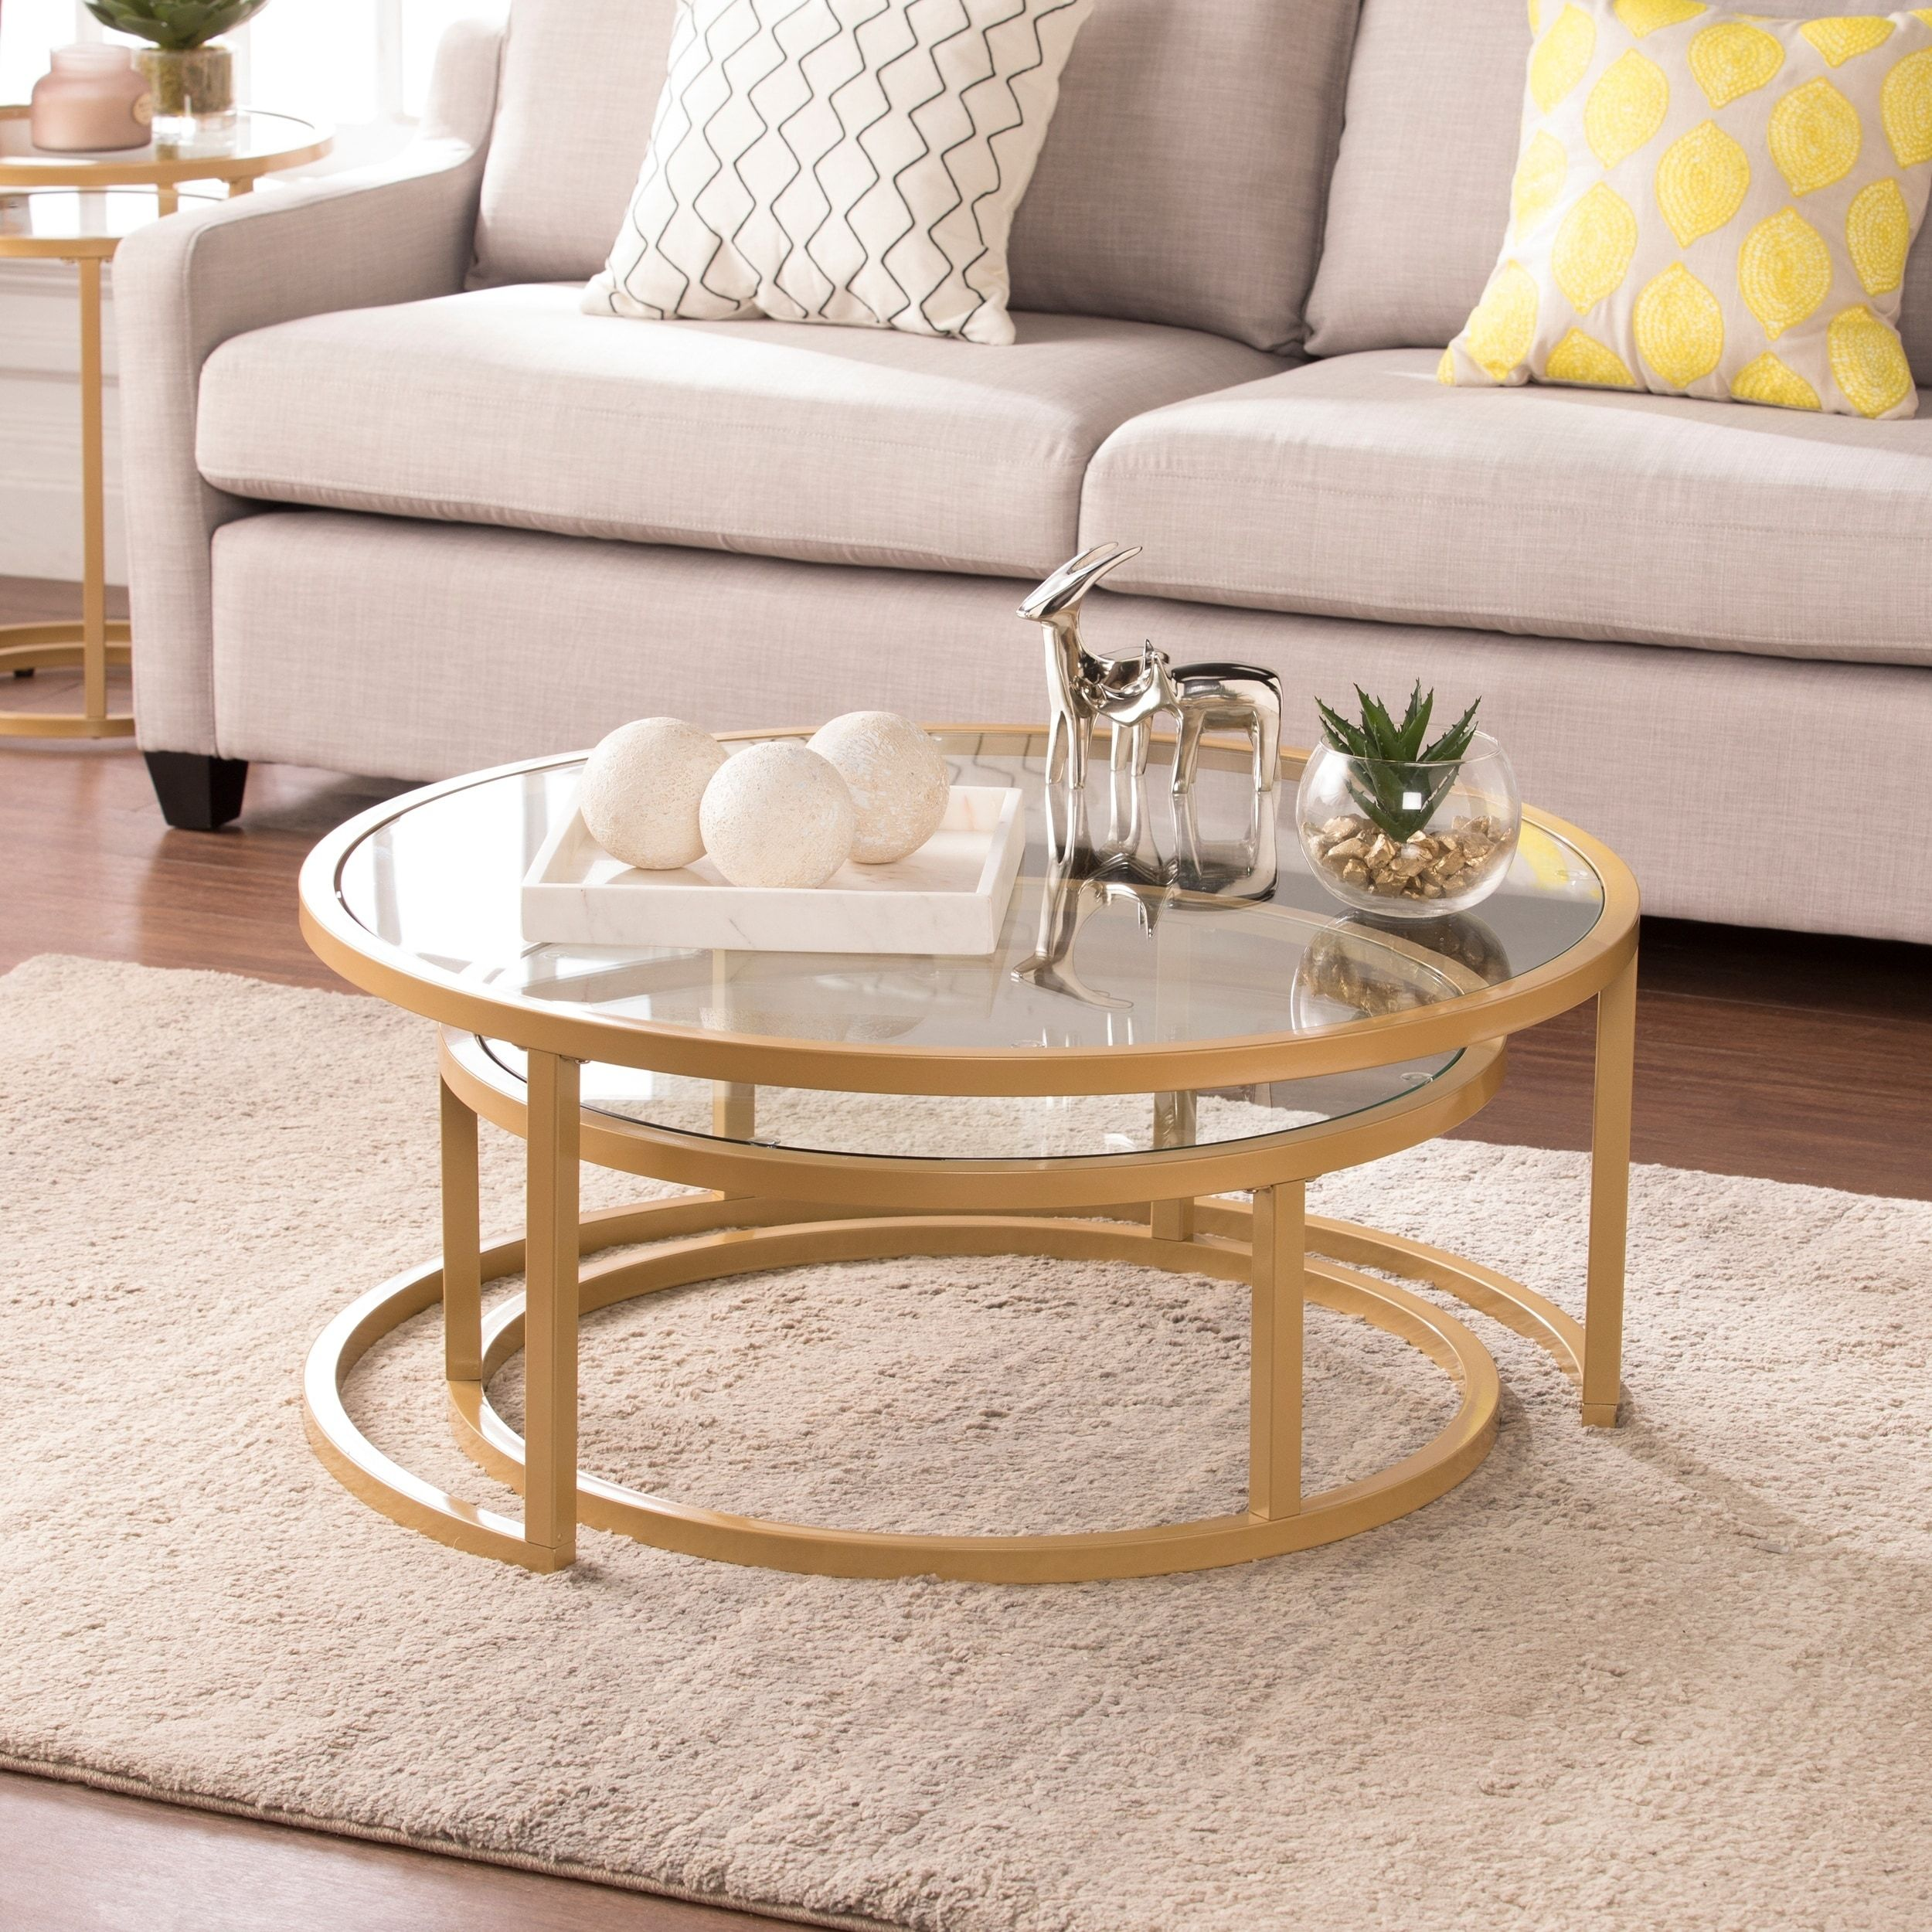 Overstock Com Online Shopping Bedding Furniture Electronics Jewelry Clothing More Nesting Coffee Tables Coffee Table Coffee Table Setting [ 2500 x 2500 Pixel ]